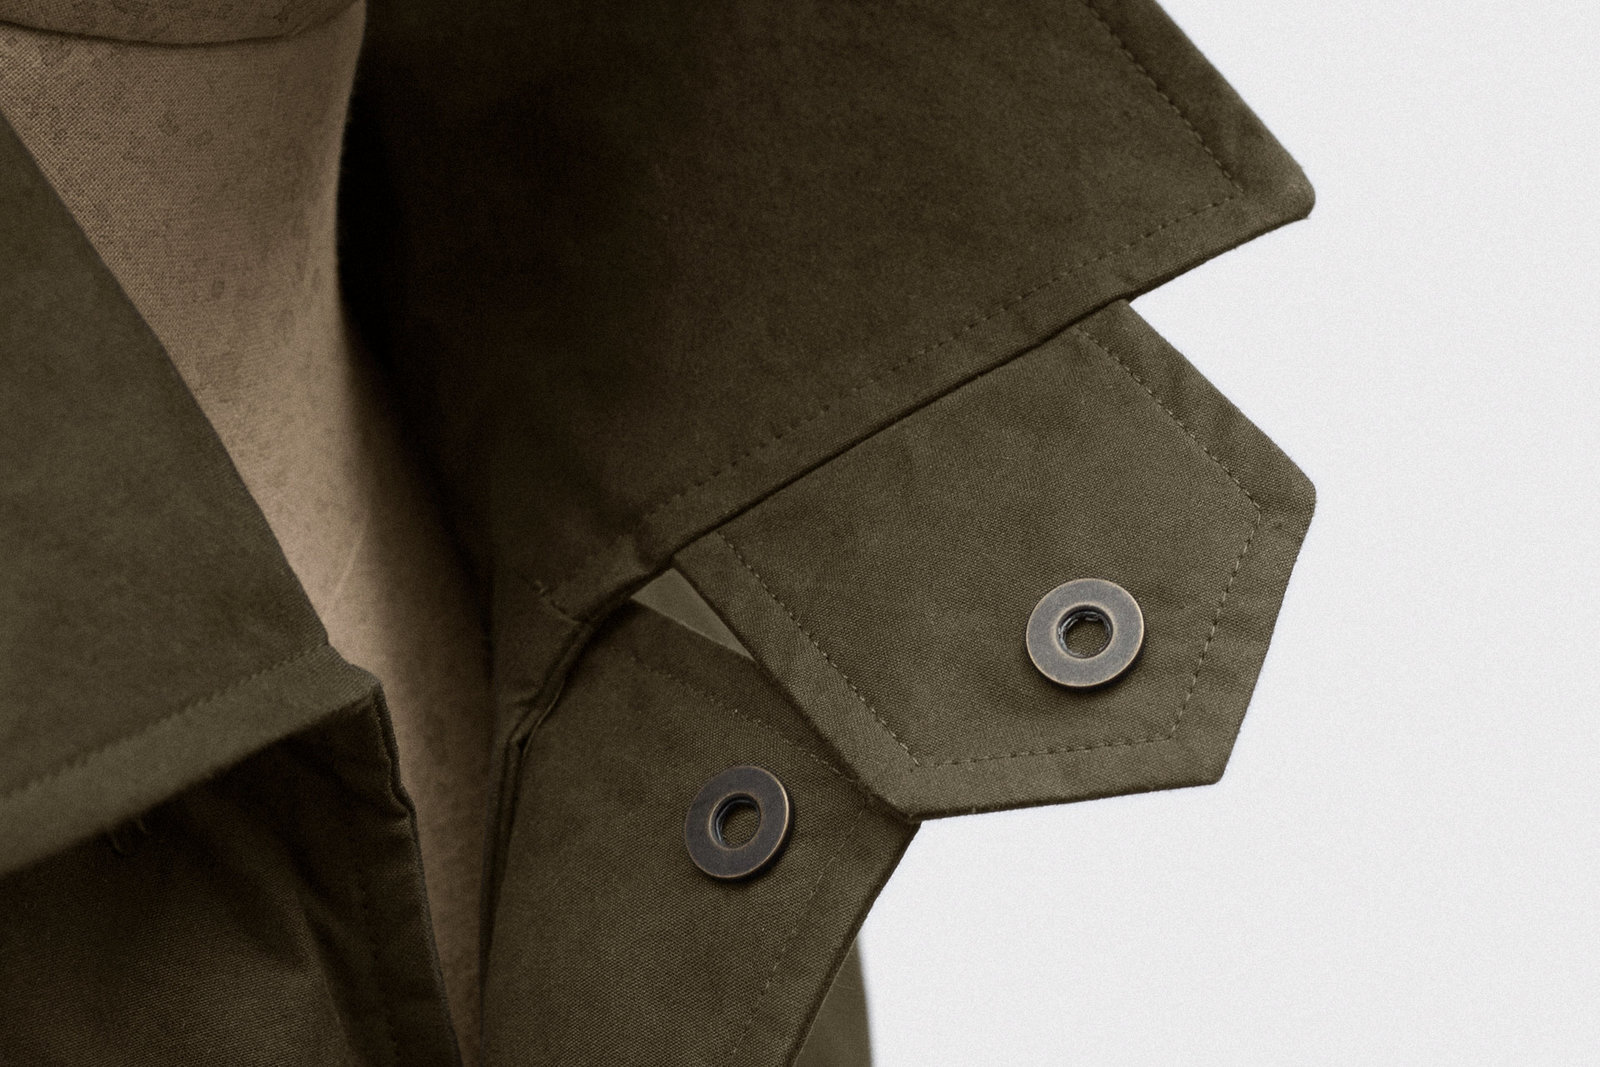 duster-coat-cotton-staywax-olive-drab-4@2x.jpeg